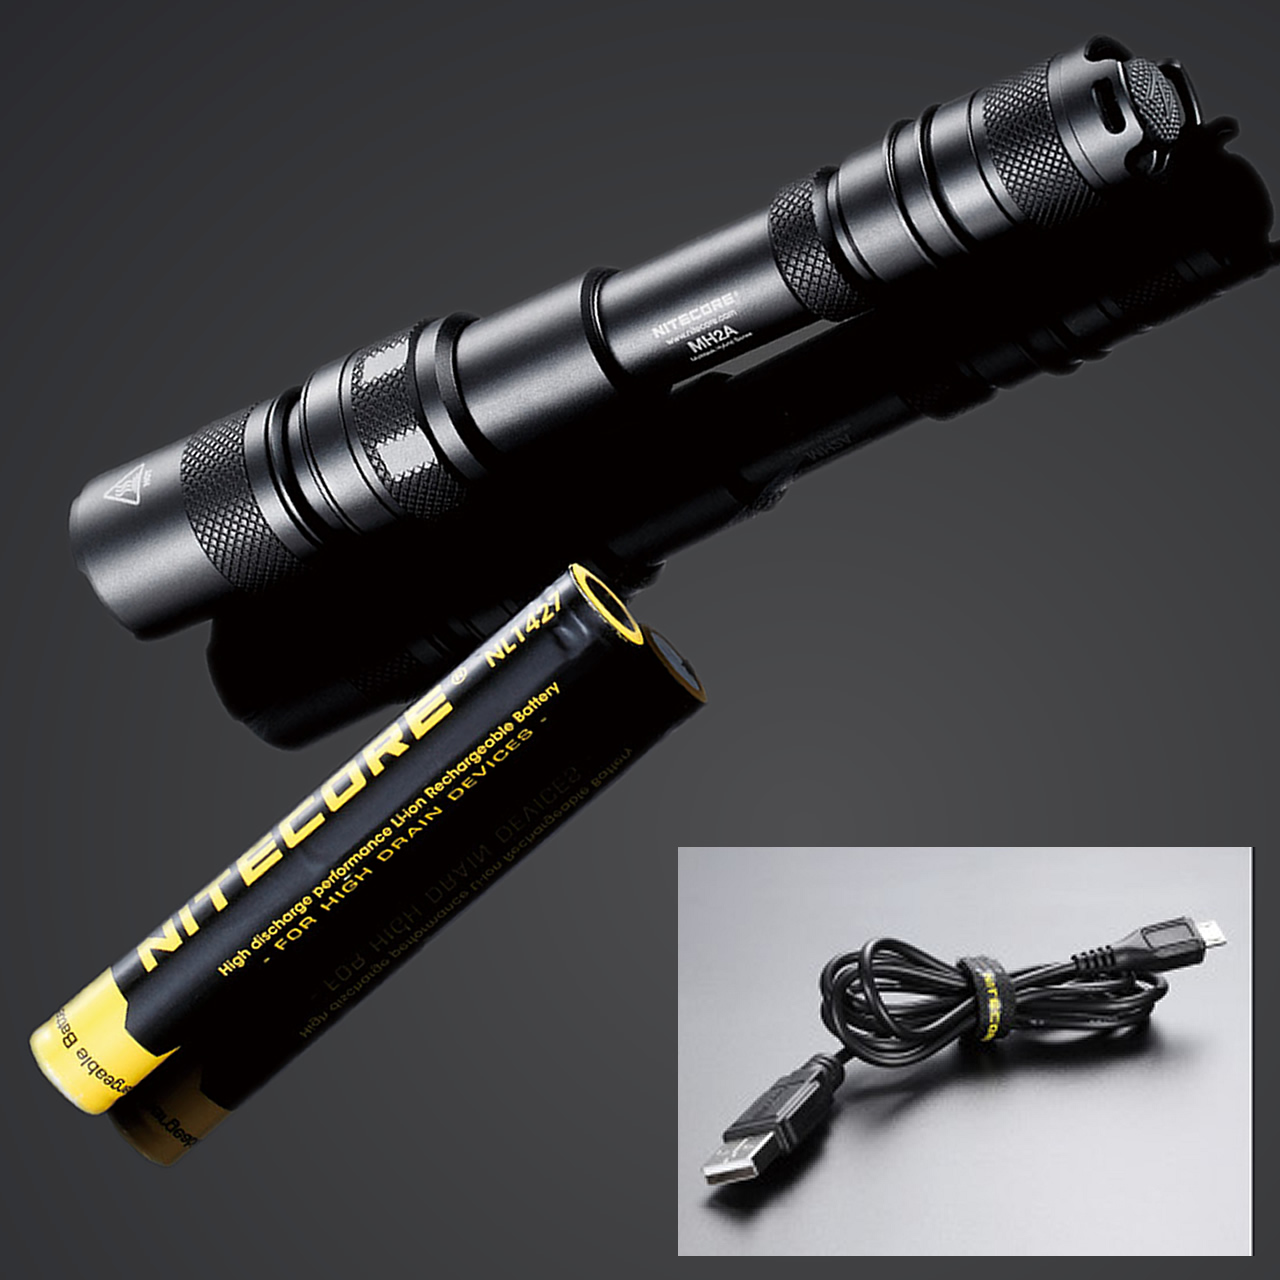 2017 NITECORE MH2A 600 Lumens XM-L U2 LED Rechargeable Flashlight Outdoor Search Rescue Tactical Torch + Battery + Free Shipping nitecore srt6 930 lumens cree xm l xm l2 t6 tactical led flashlight black free shipping